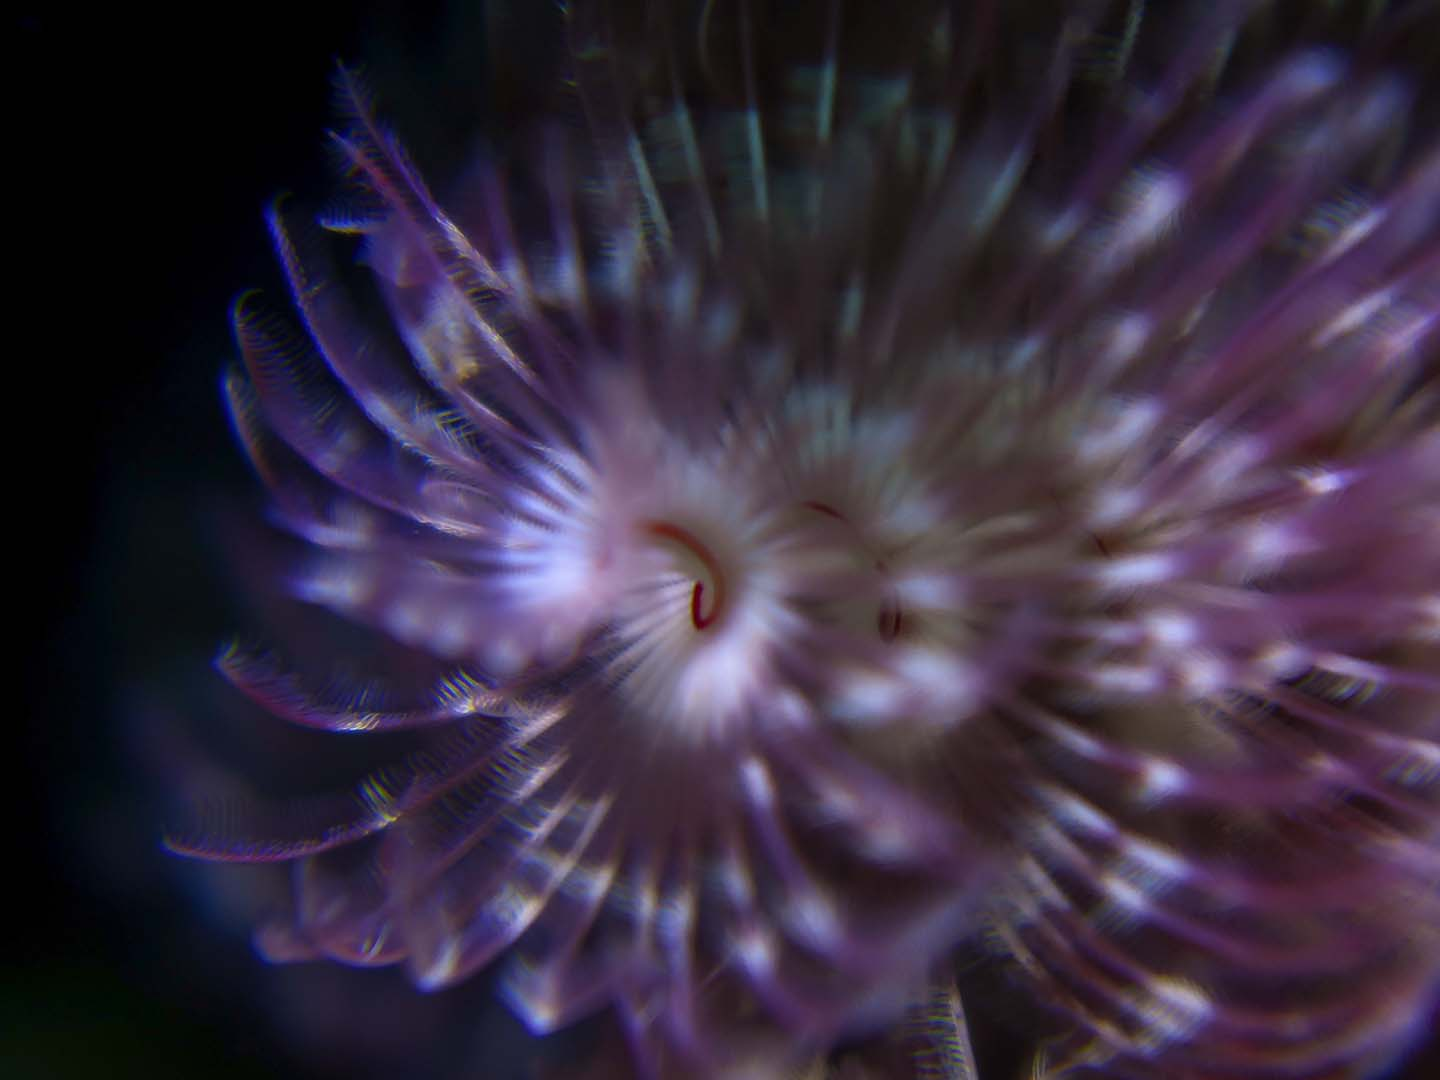 Siquijor Scuba Diving things to see underwater: Featherstar fish